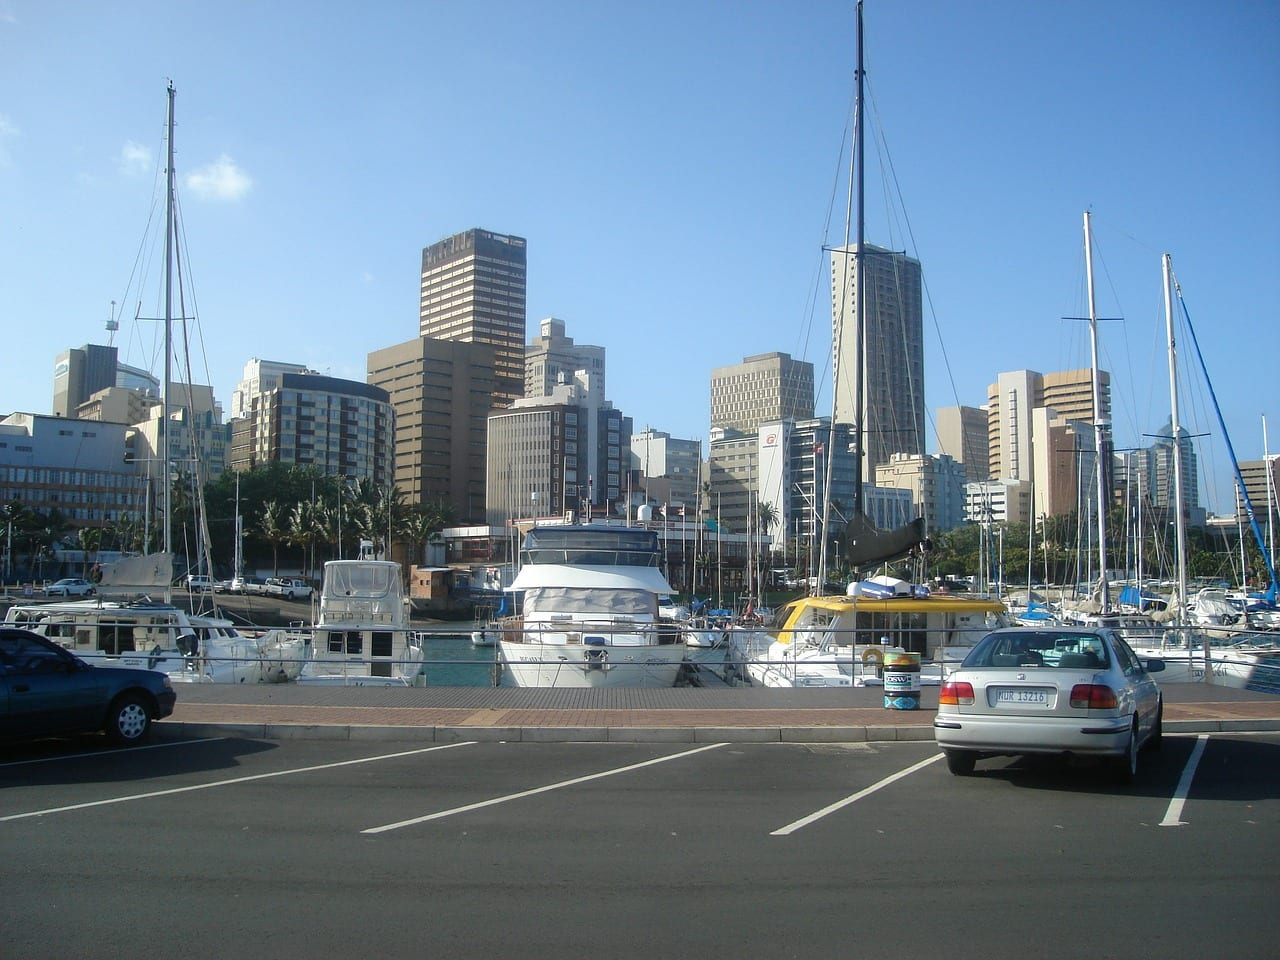 Street on the harbor front in Durban